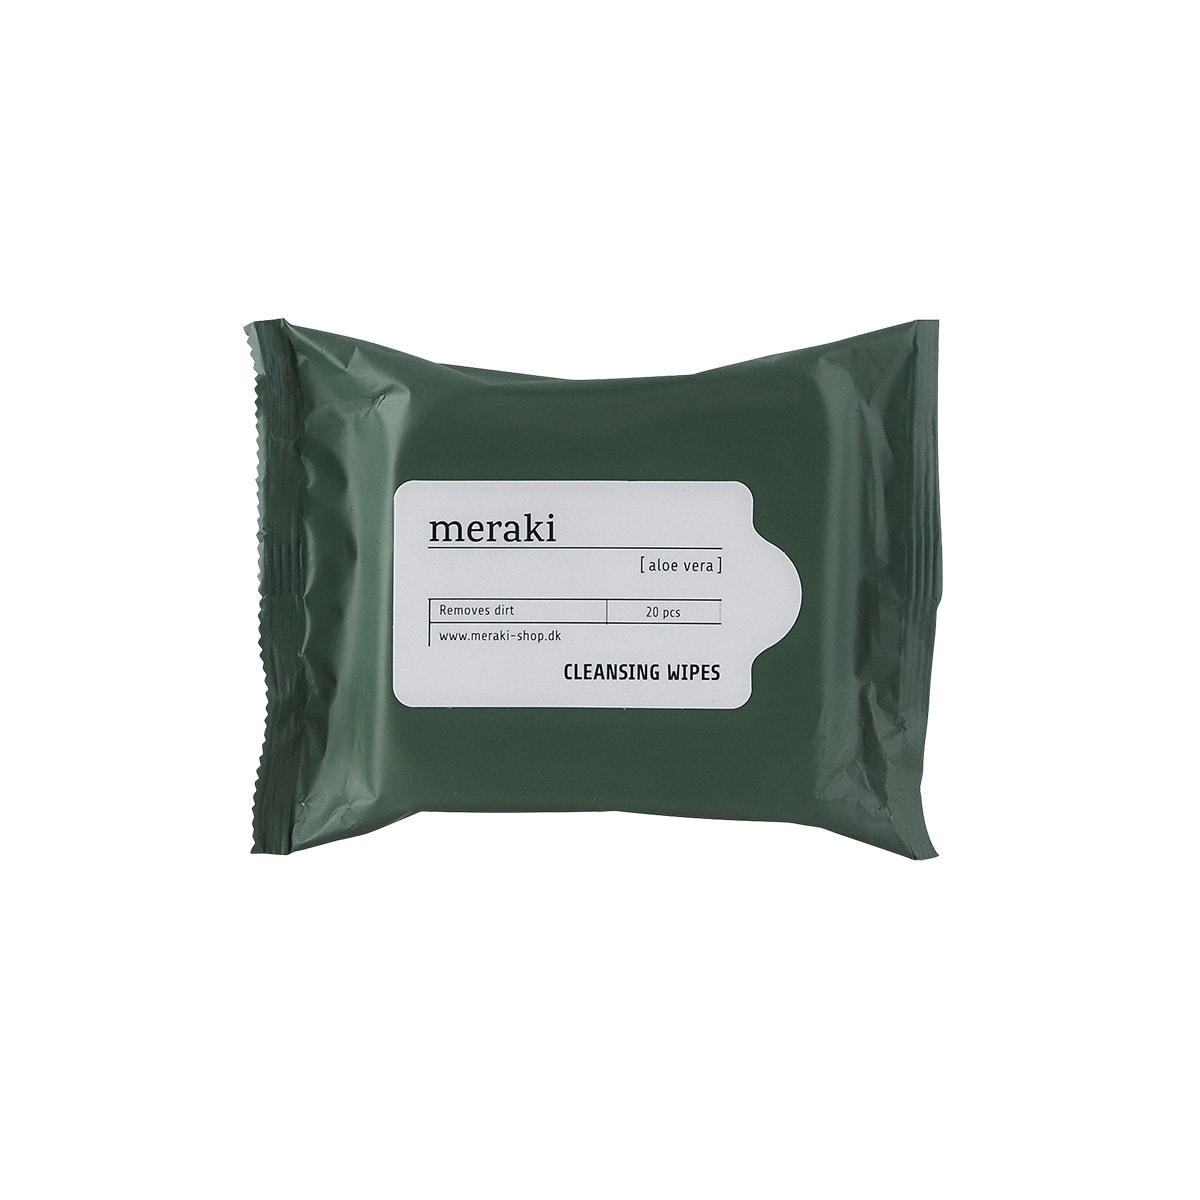 Meraki Cleansing Wipes